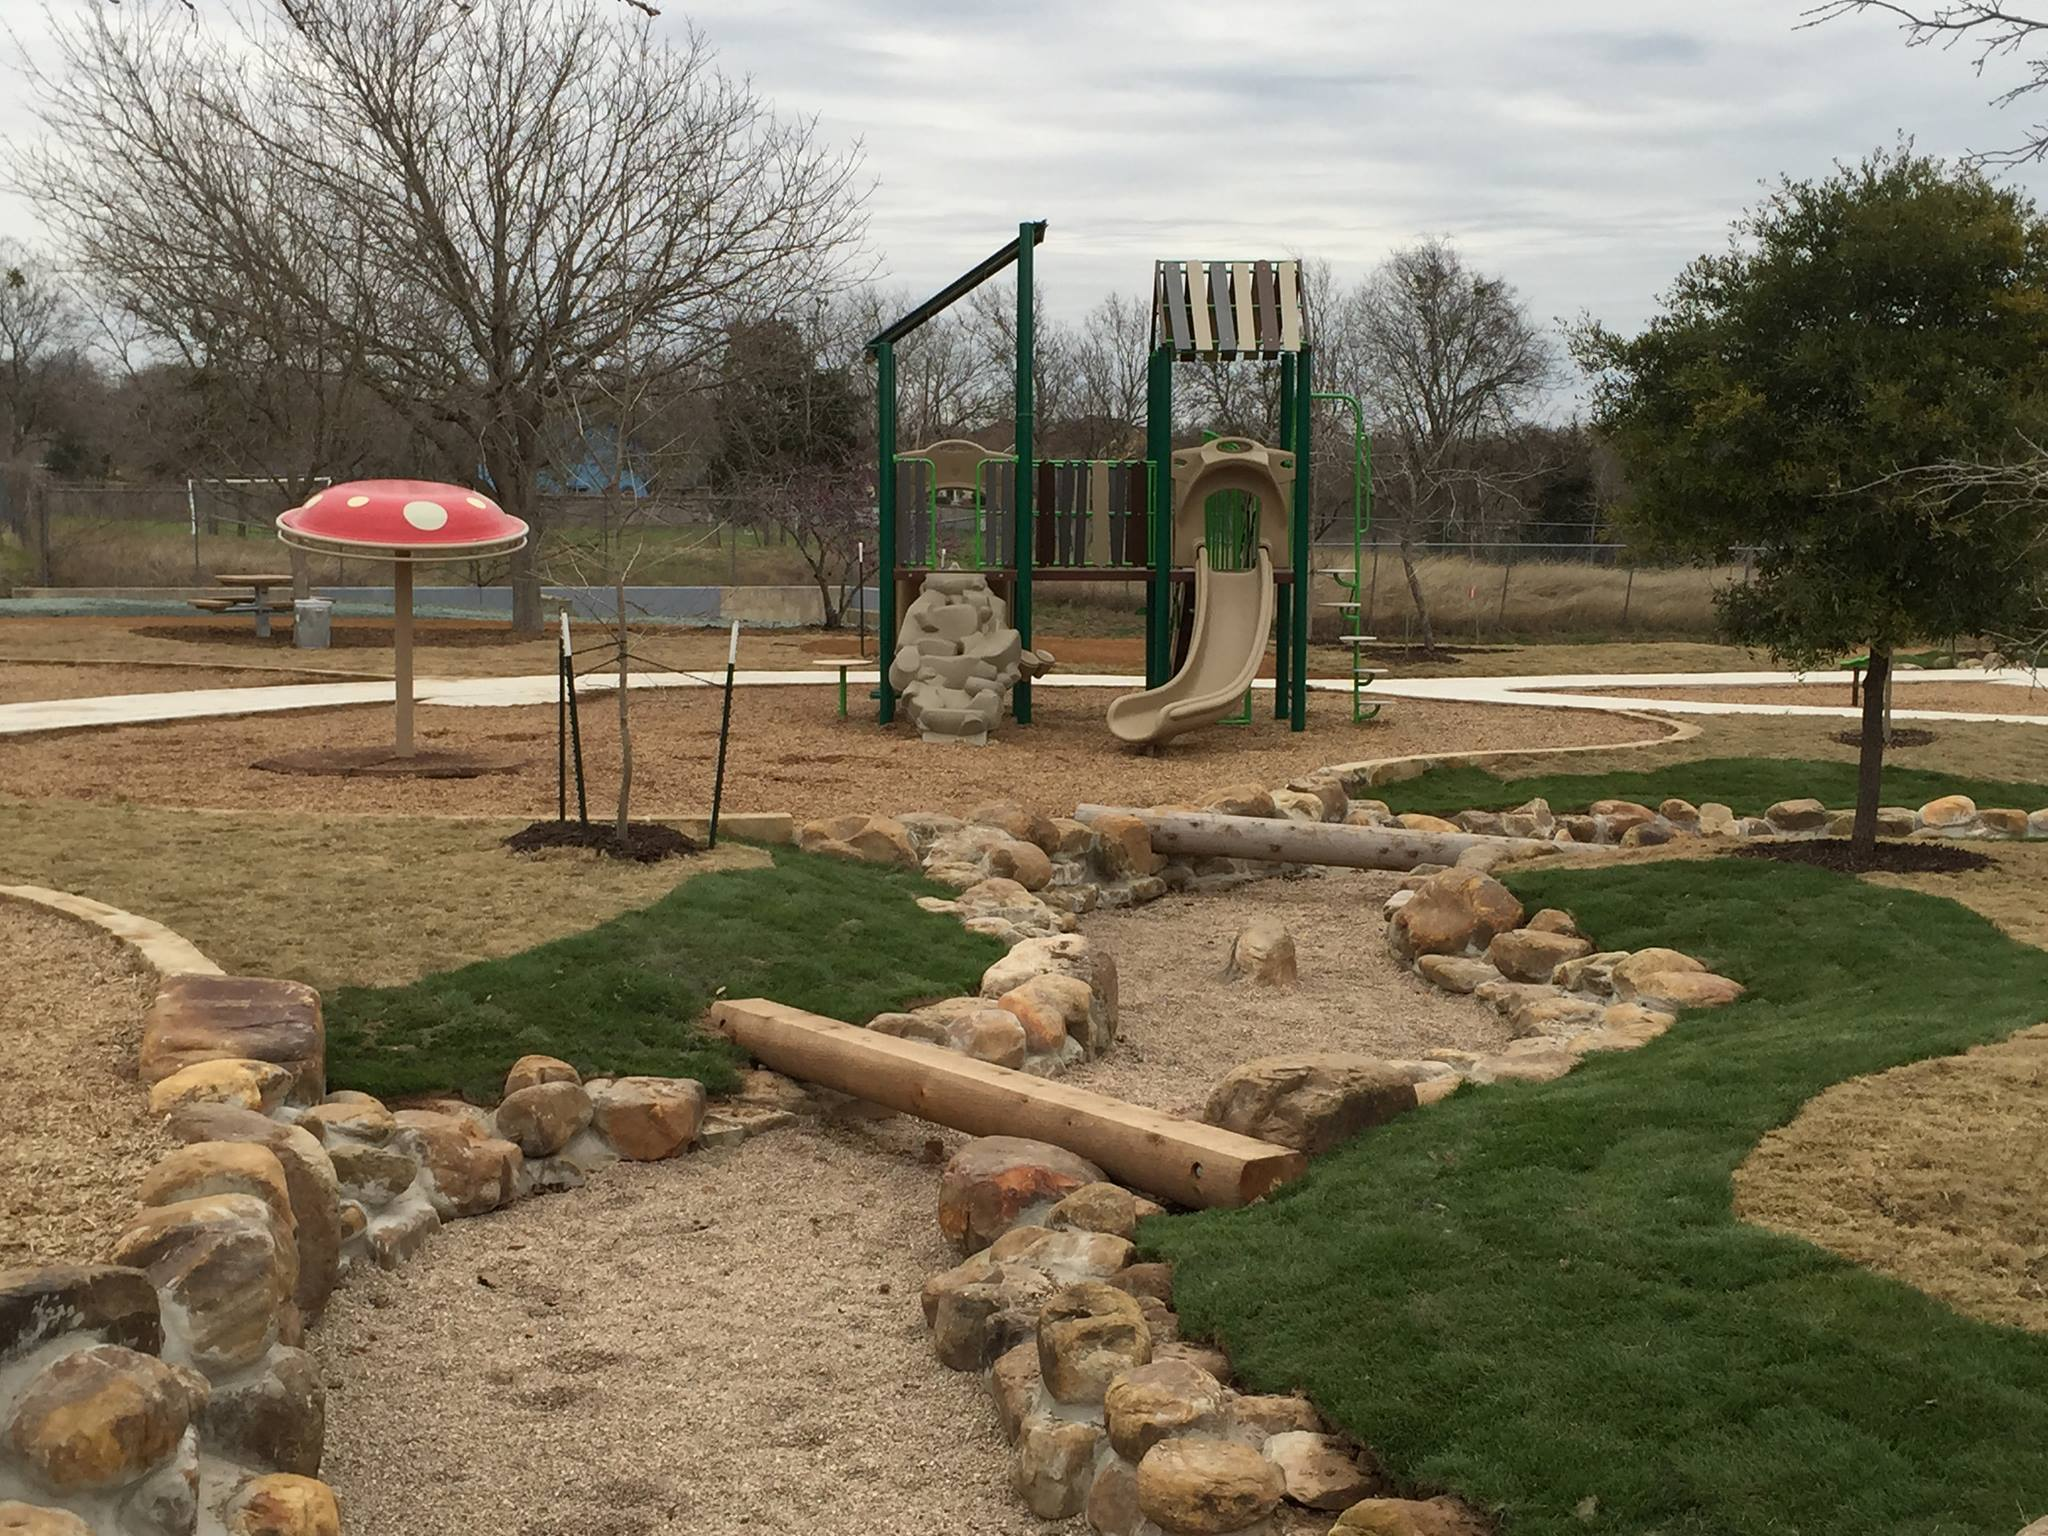 GameTime Brings Custom, Nature Play to Austin Neighborhood